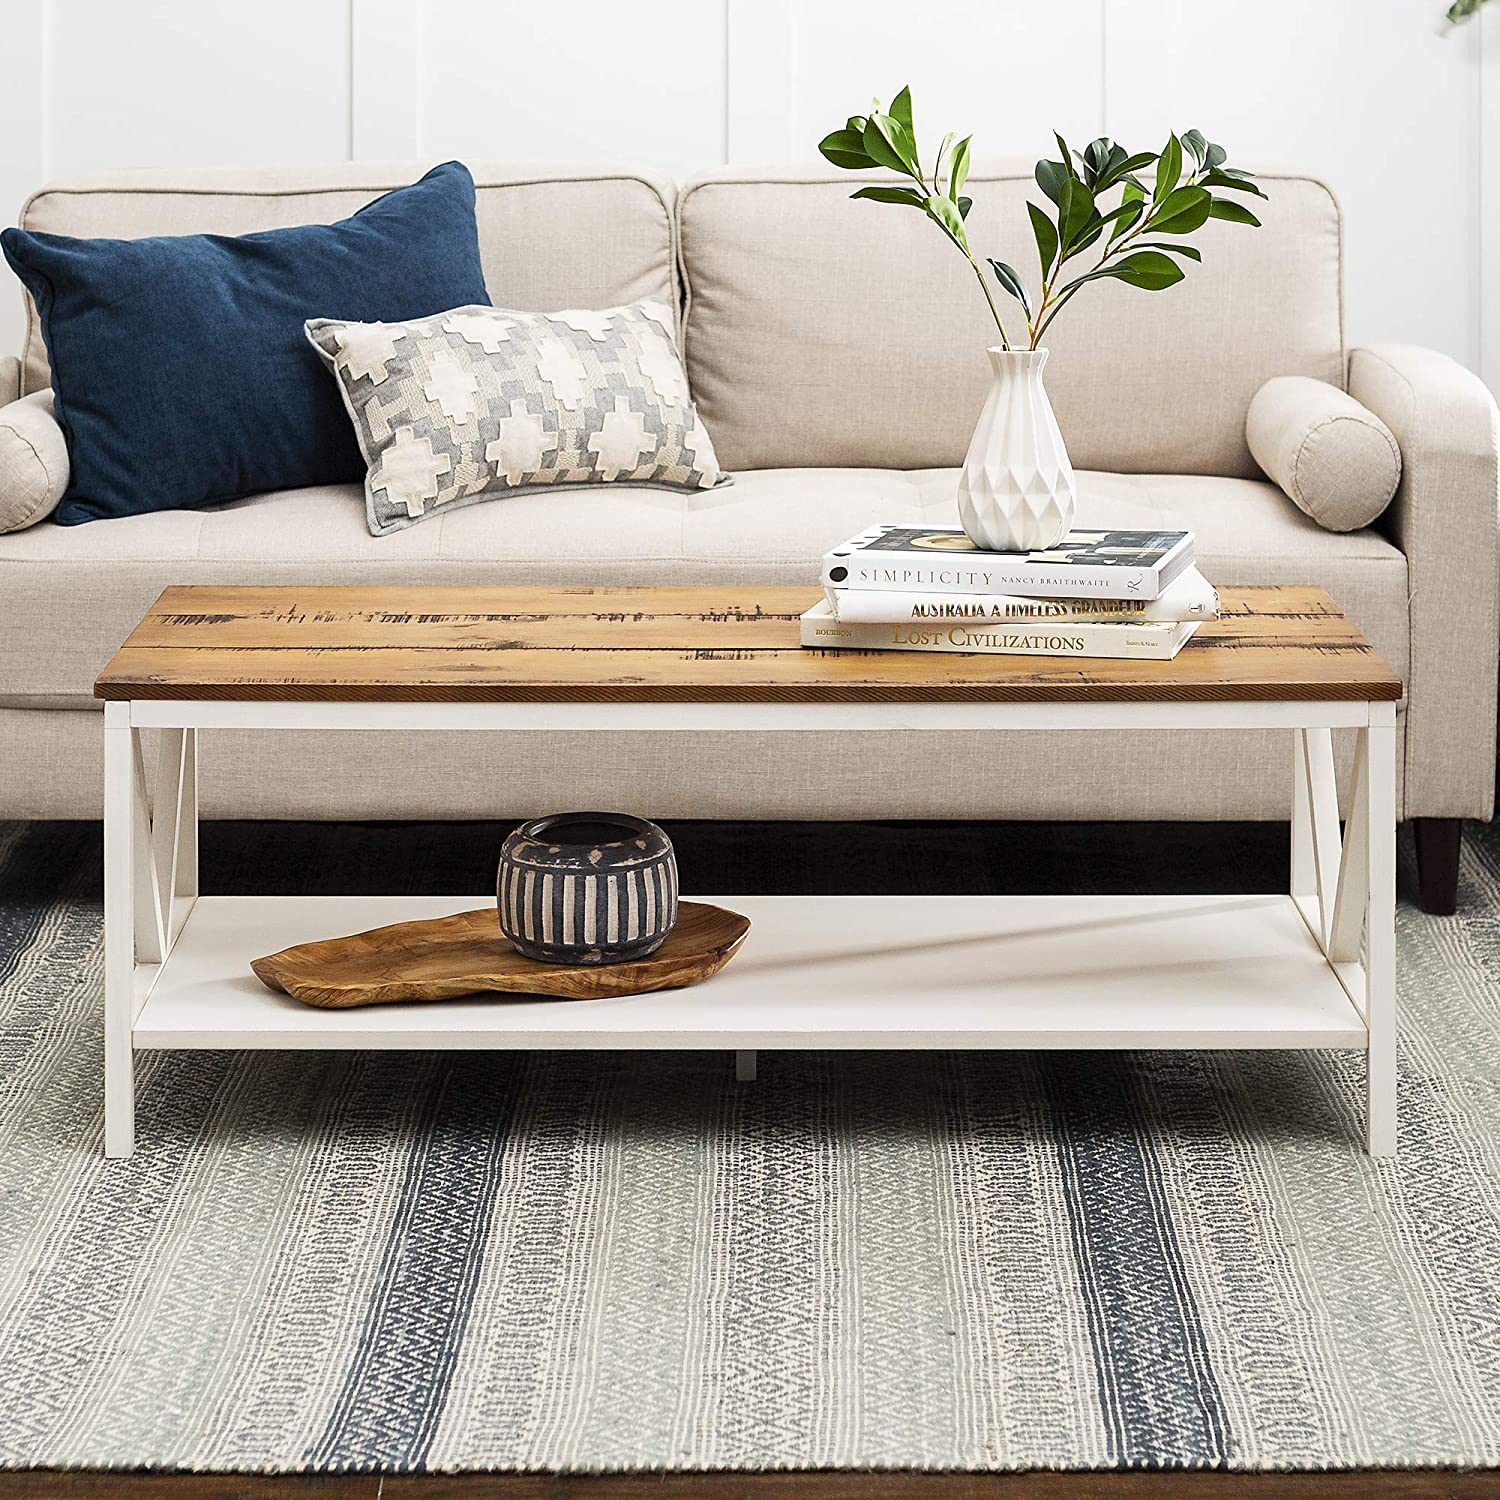 - Amazon.com: New 48 Inch Distressed Farmhouse Coffee Table With White Wash  Finish: Kitchen & Dining